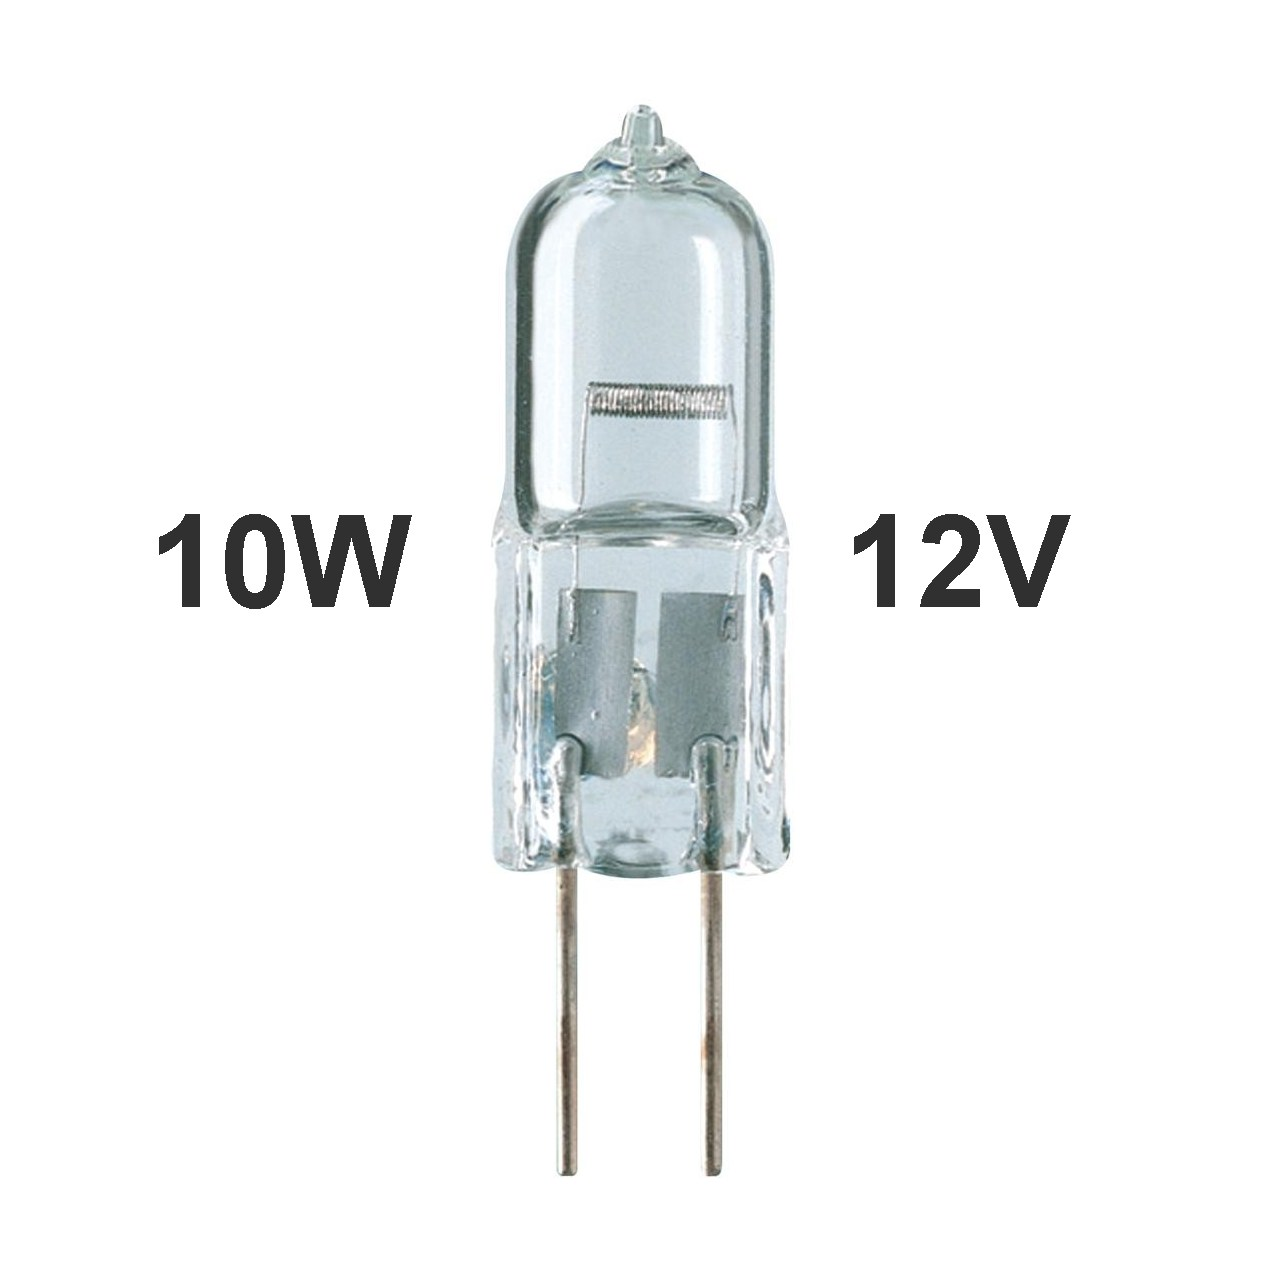 brizzo lighting stores 10w halogen g4 bi pin bulb 12v low voltage. Black Bedroom Furniture Sets. Home Design Ideas